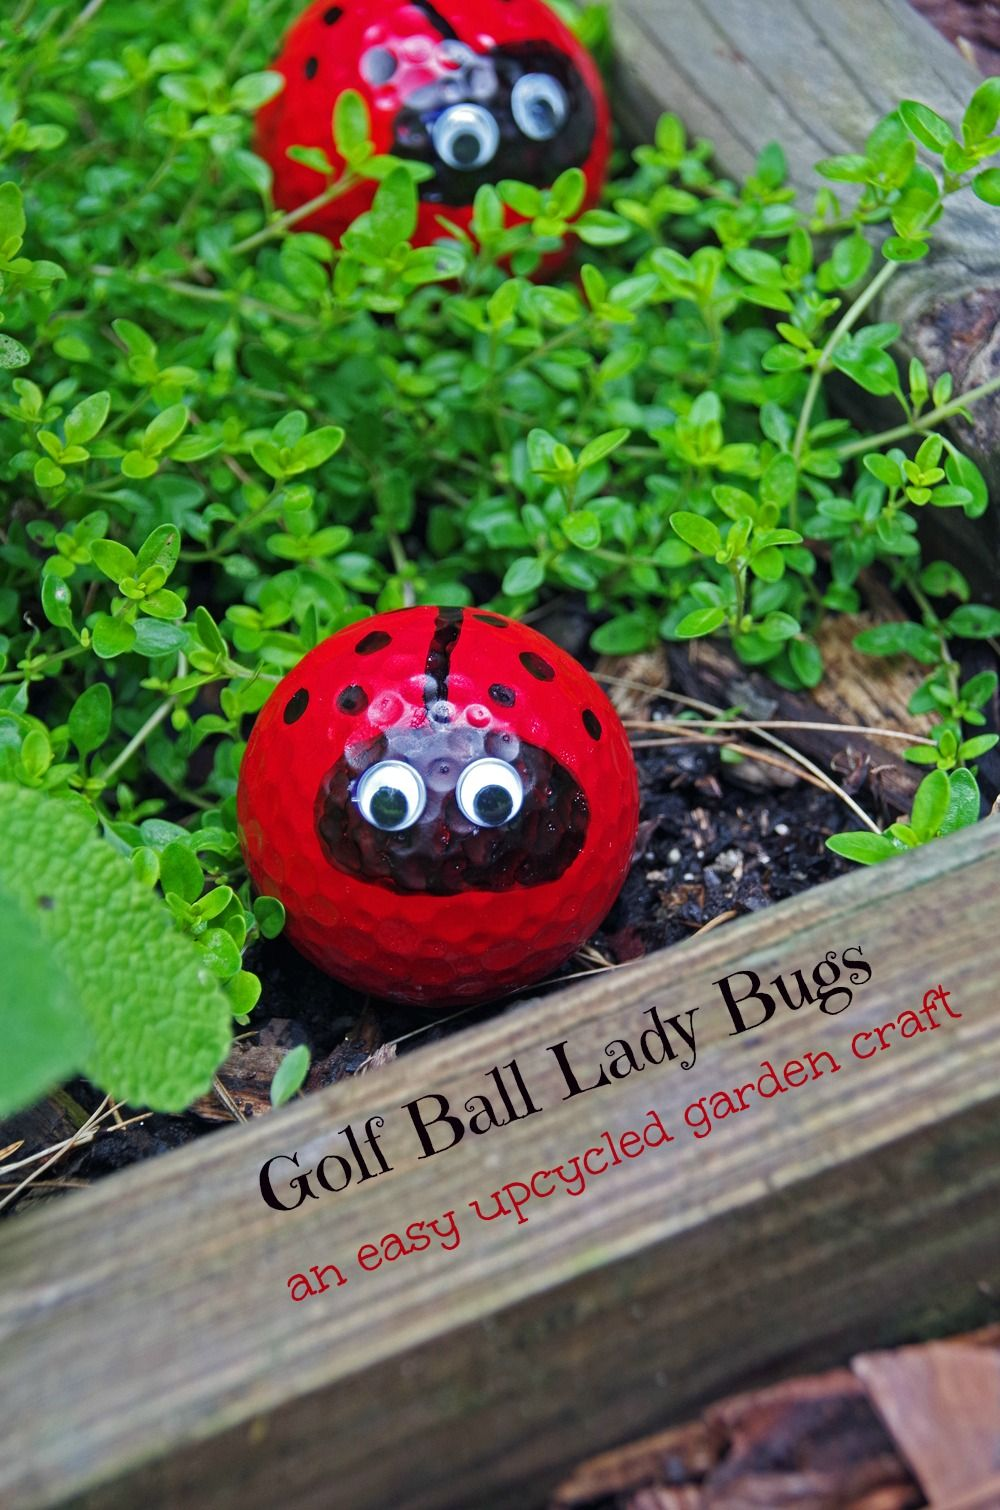 Garden decor craft ideas  Golf Ball Lady Bug Craft Makes Very Pretty Upcycled Garden Decor